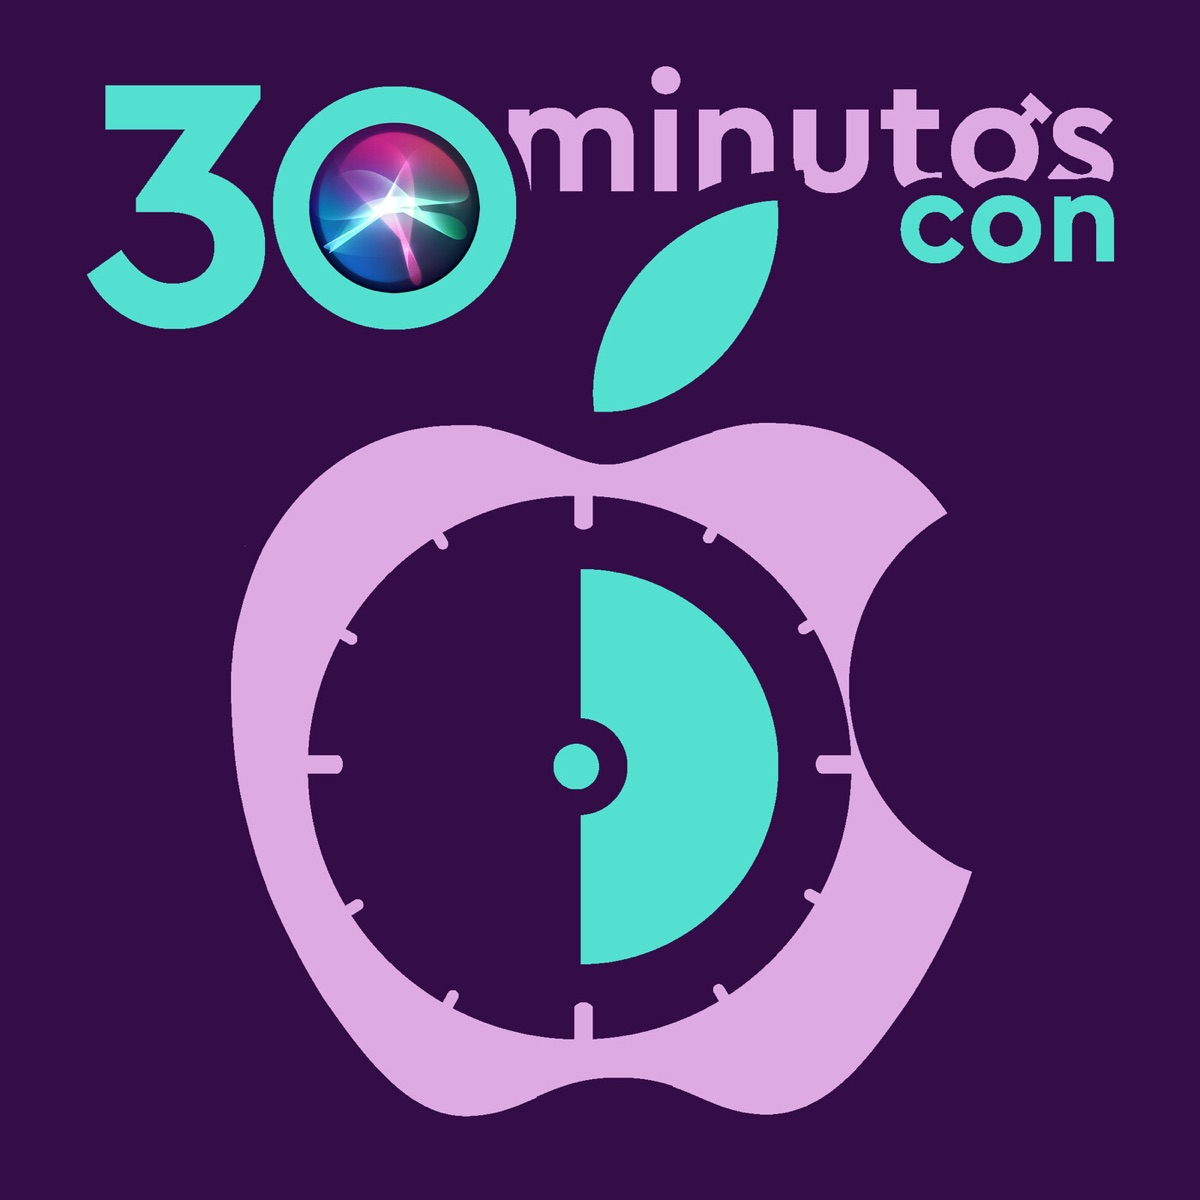 30 minutos con Apple